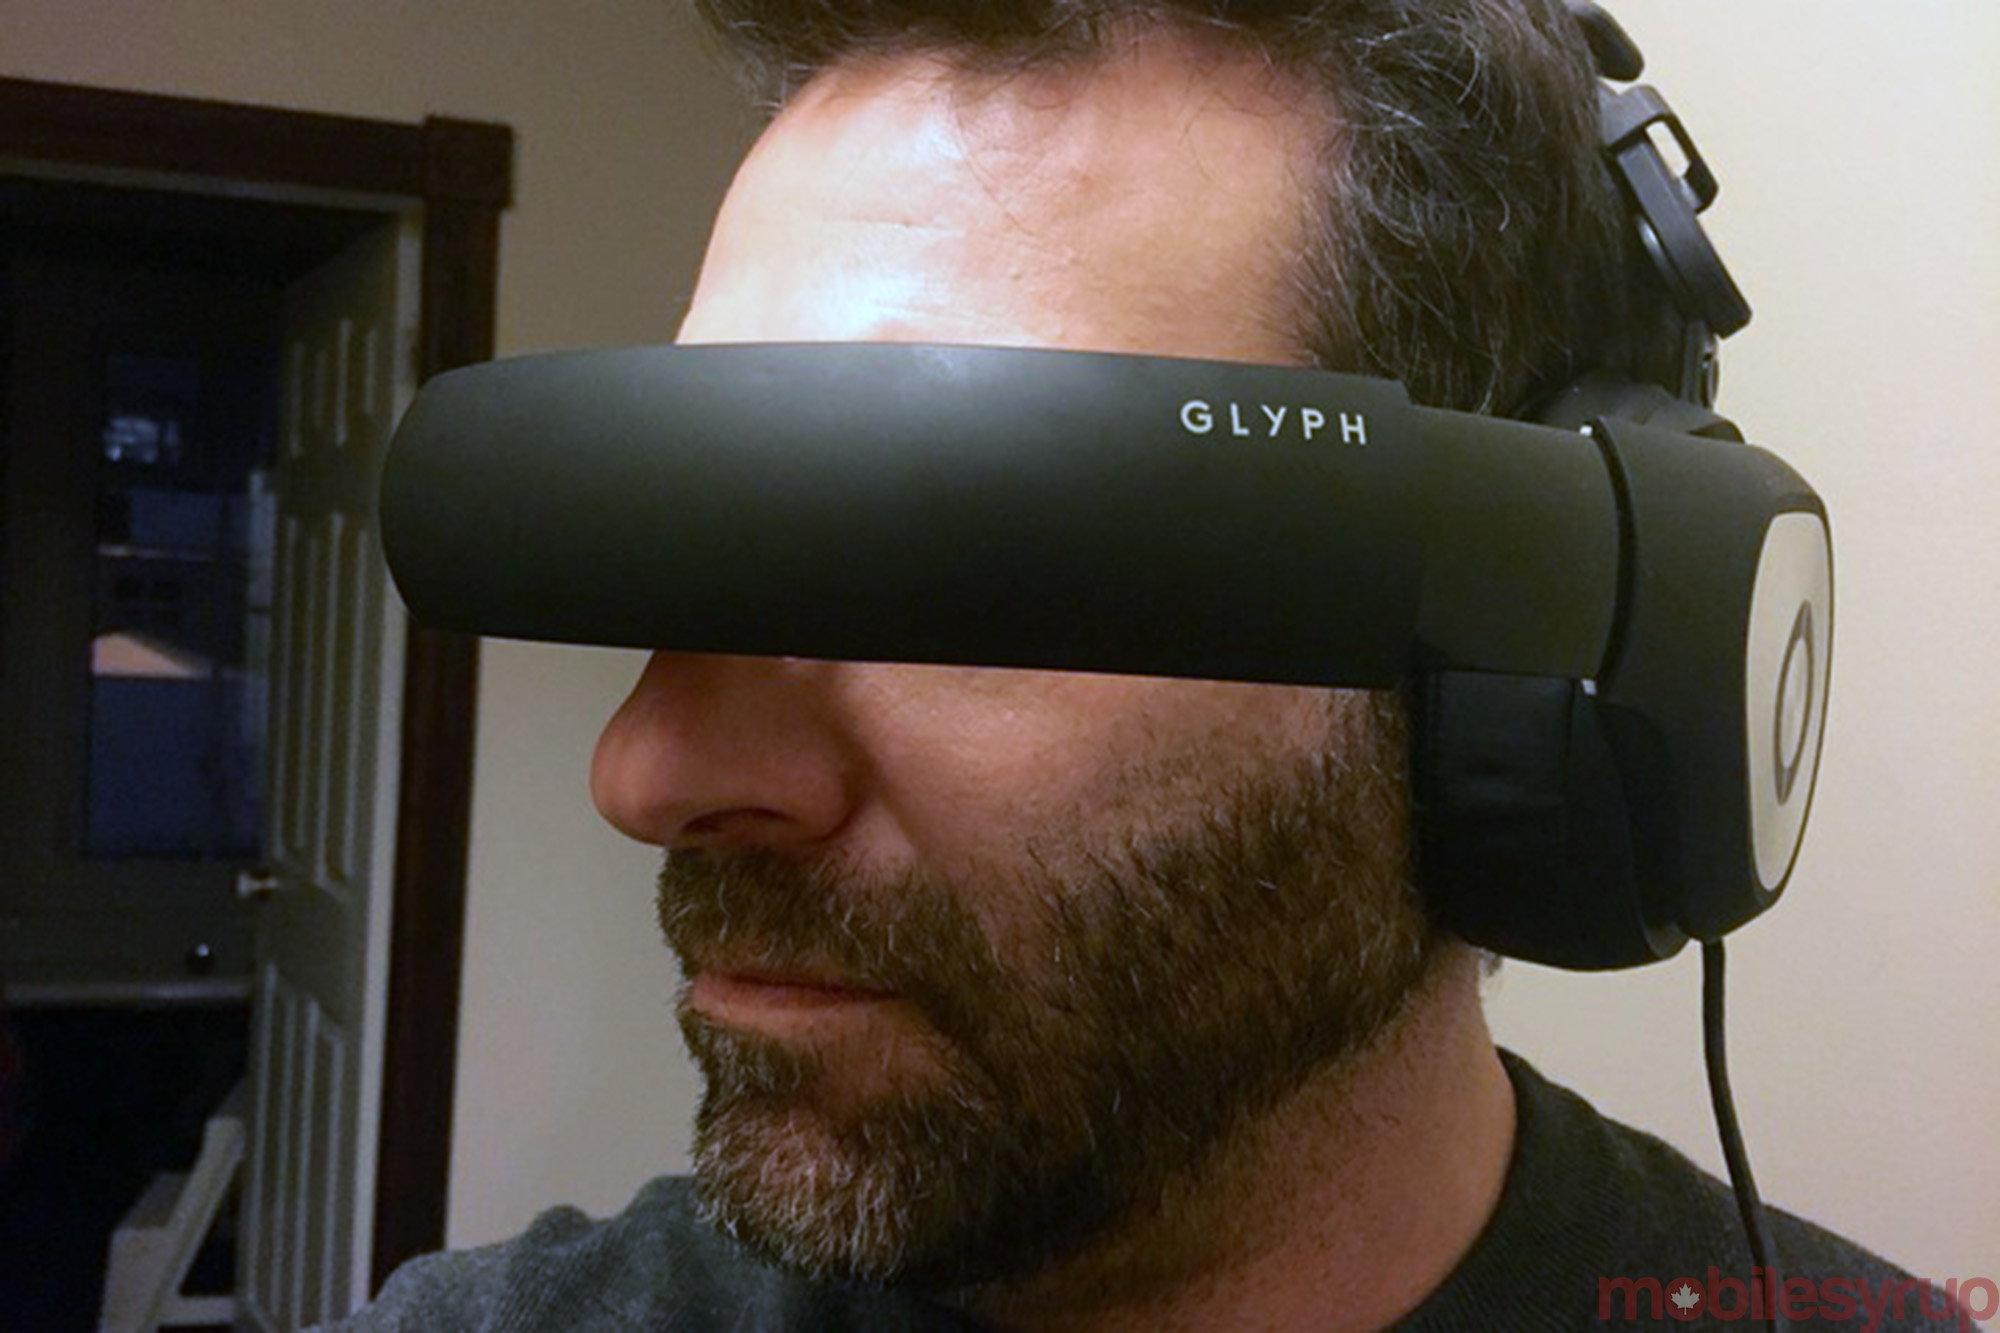 cb1e67c27fcb Avegant Glyph review  An immersive private viewing experience ...